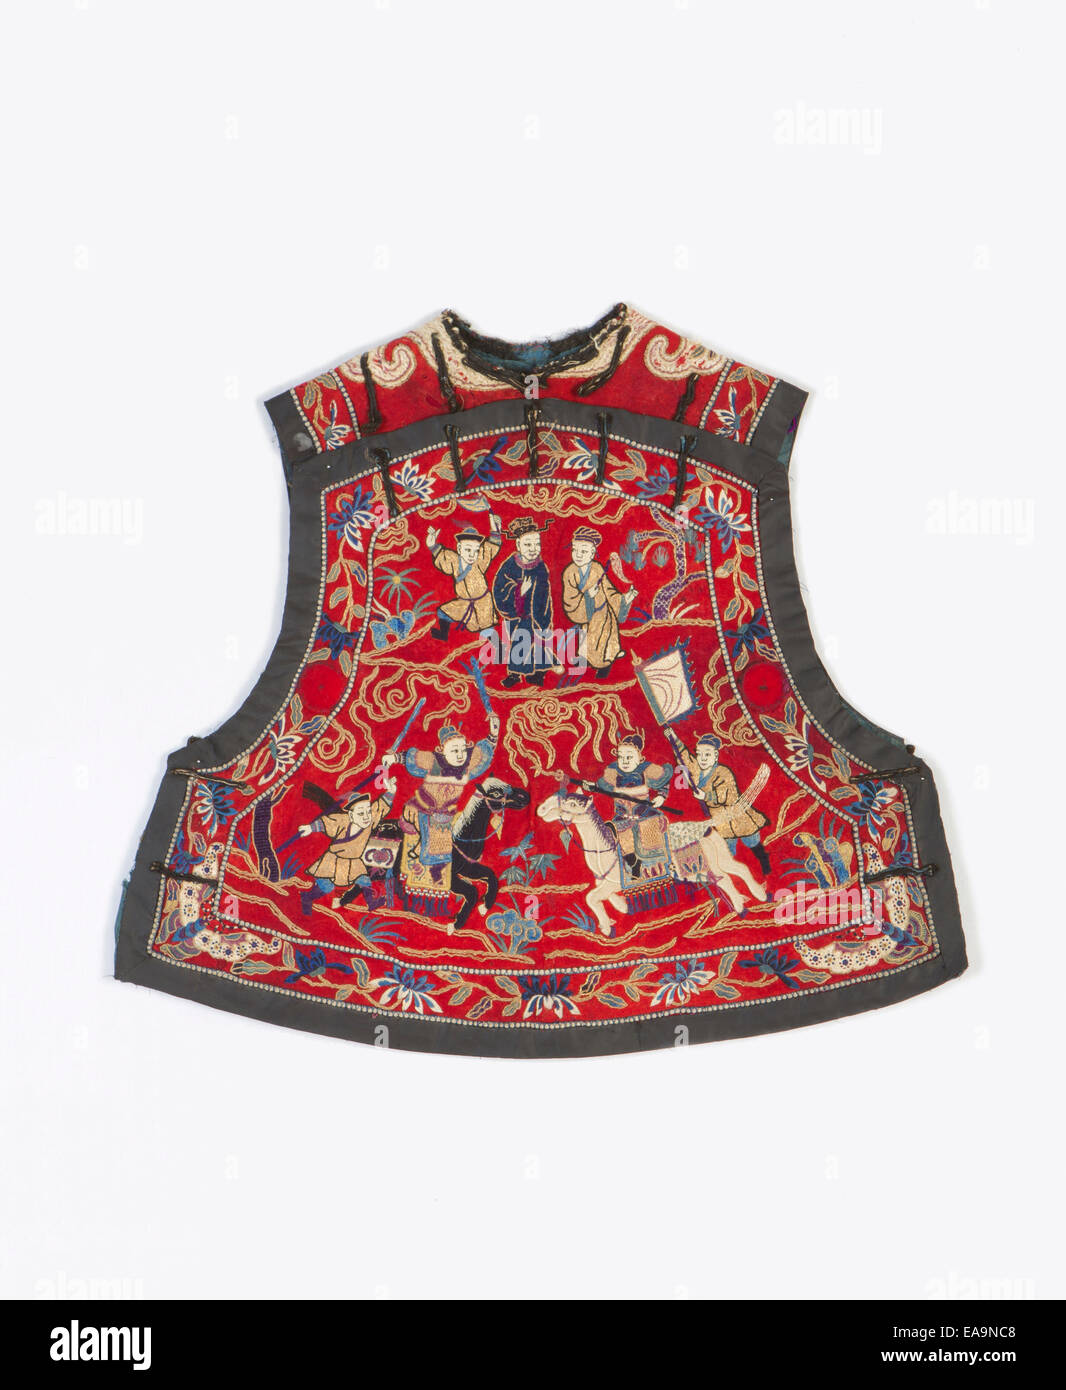 Ancient Chinese vest - Stock Image